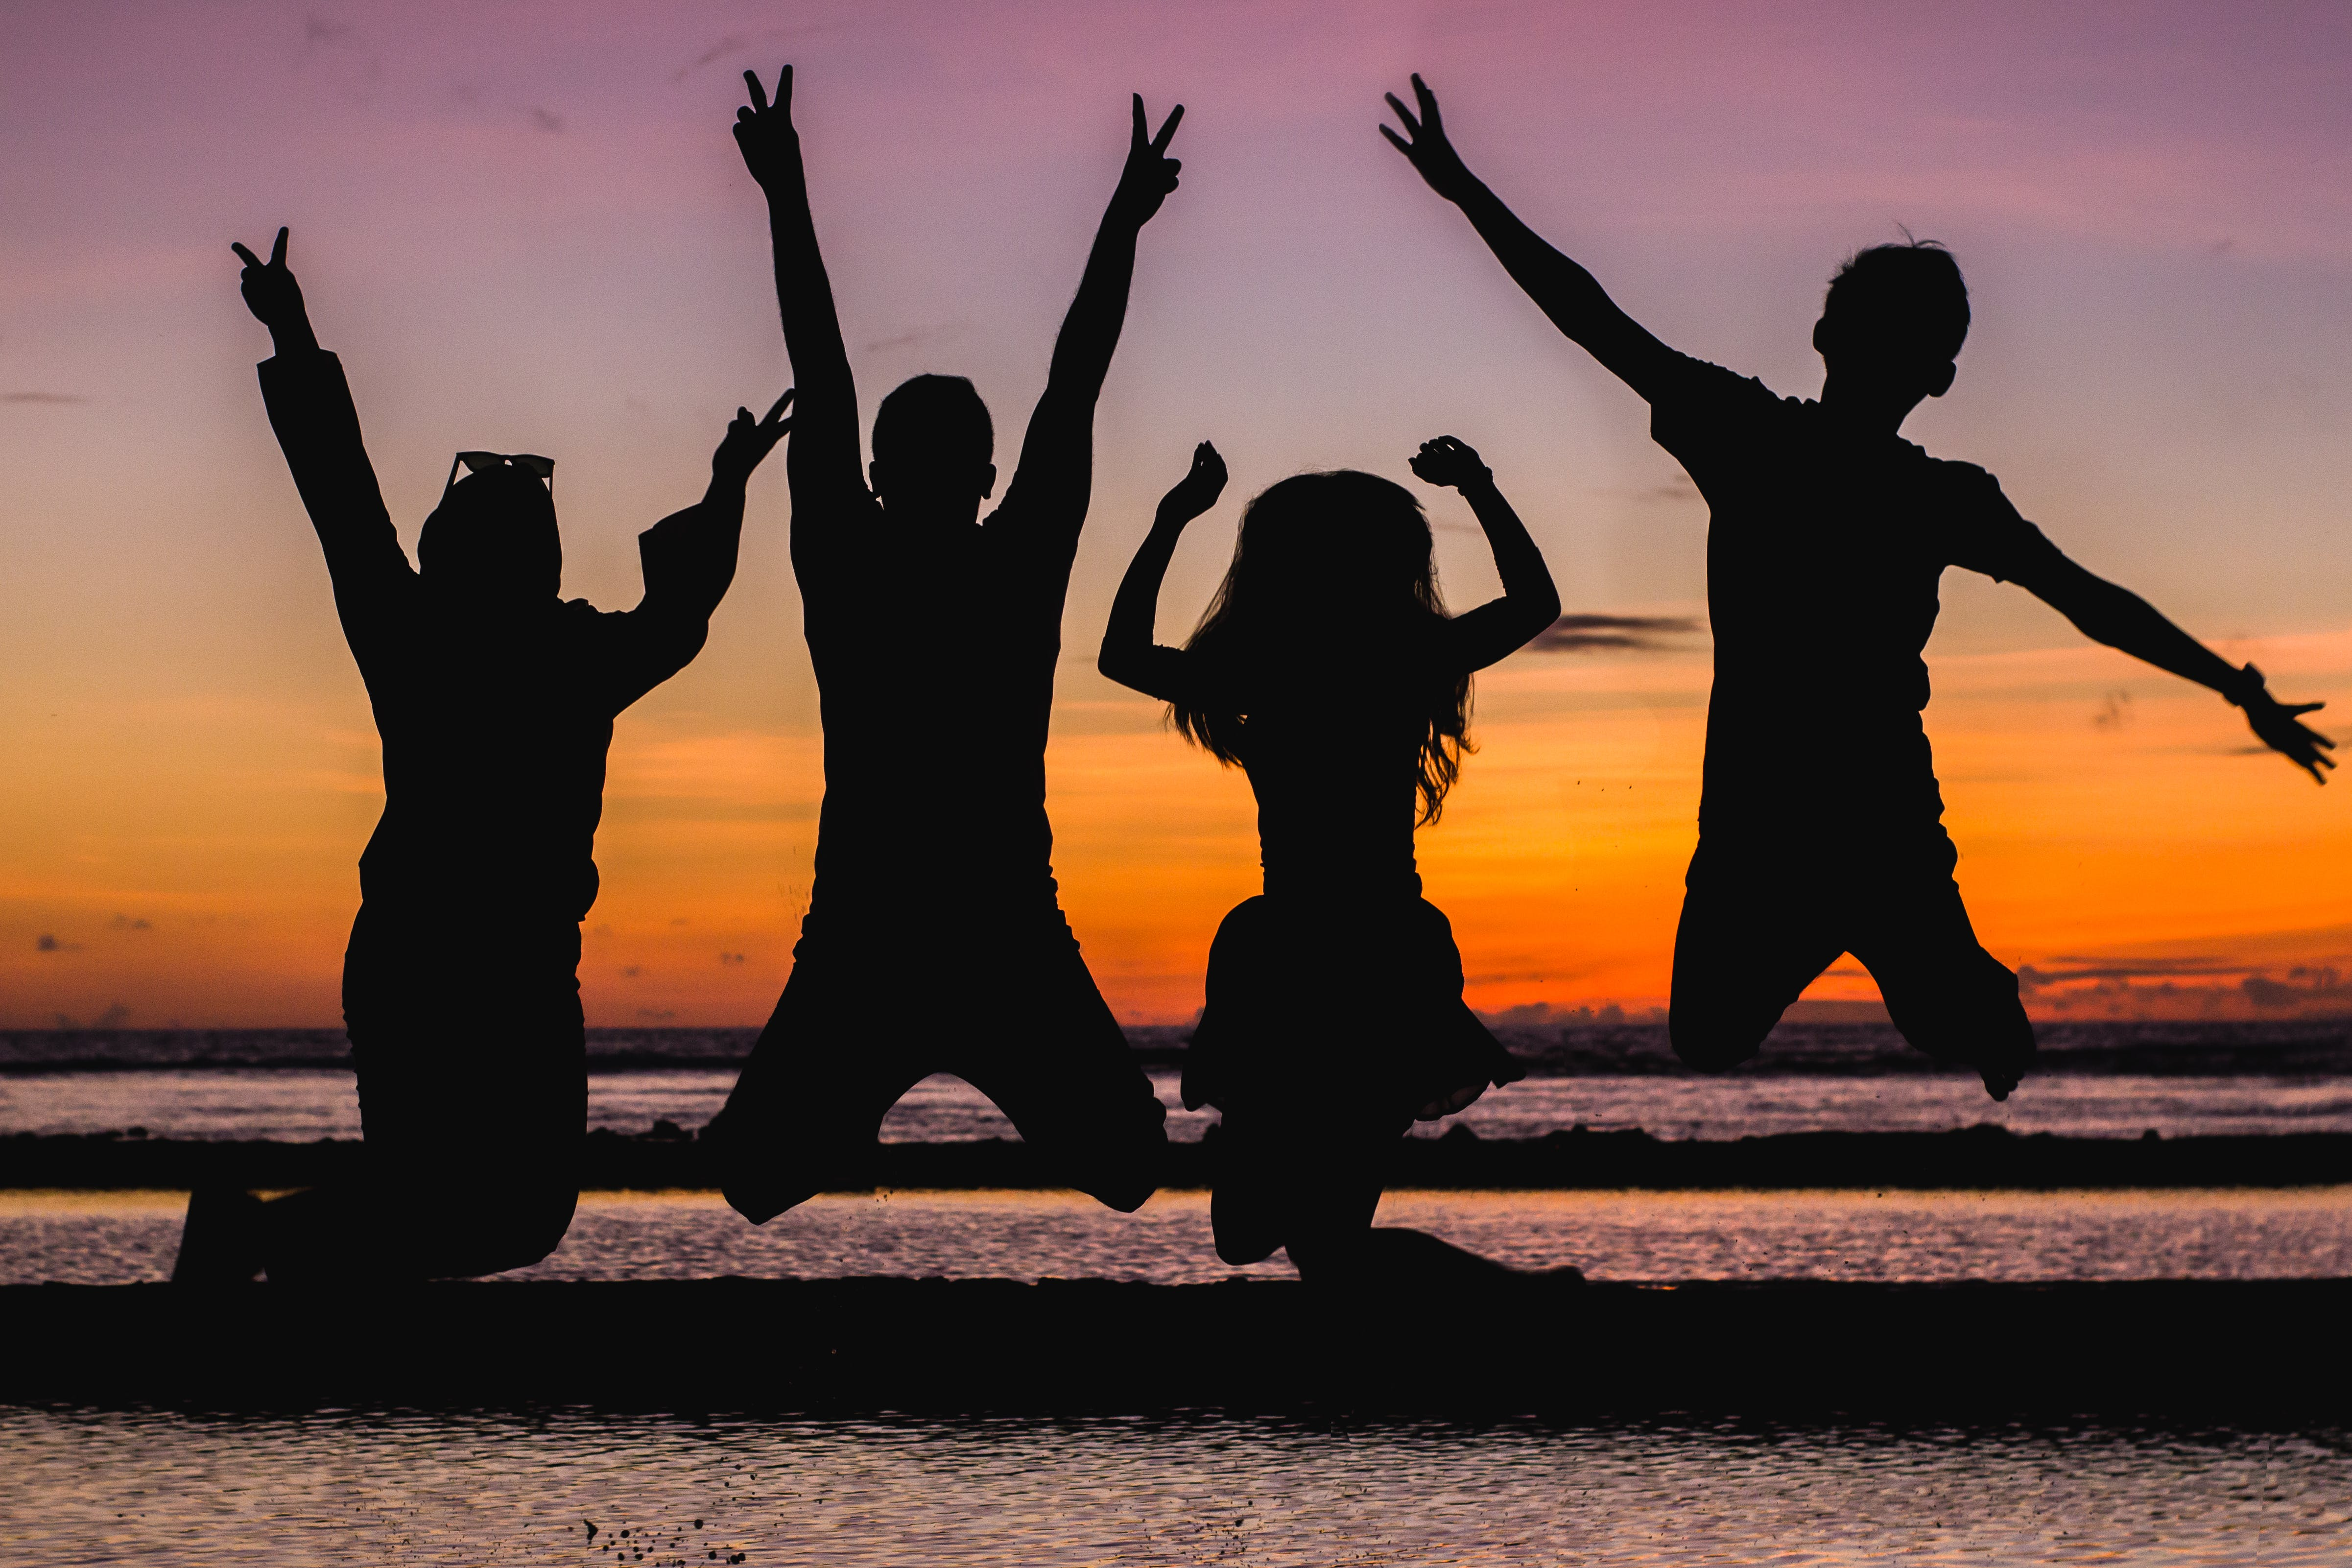 Silhouette of People Jumping